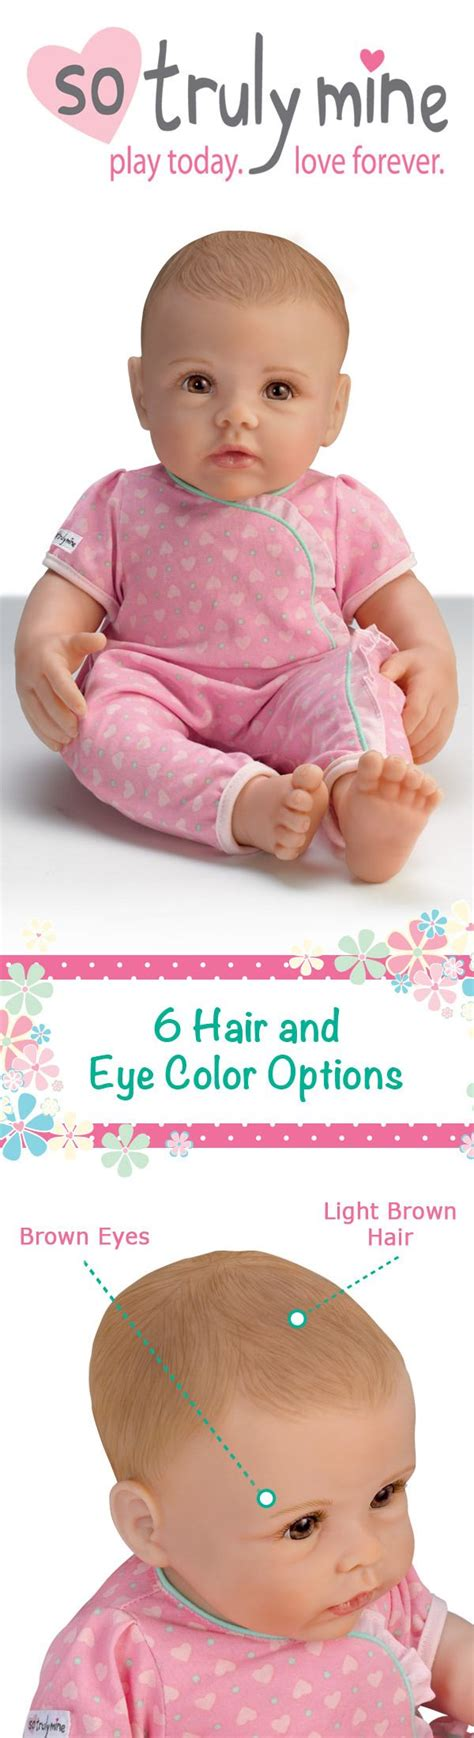 Baby Laundry Hers 1000 Images About So Truly Mine On Play Doll Baby Dolls And Lifelike Dolls